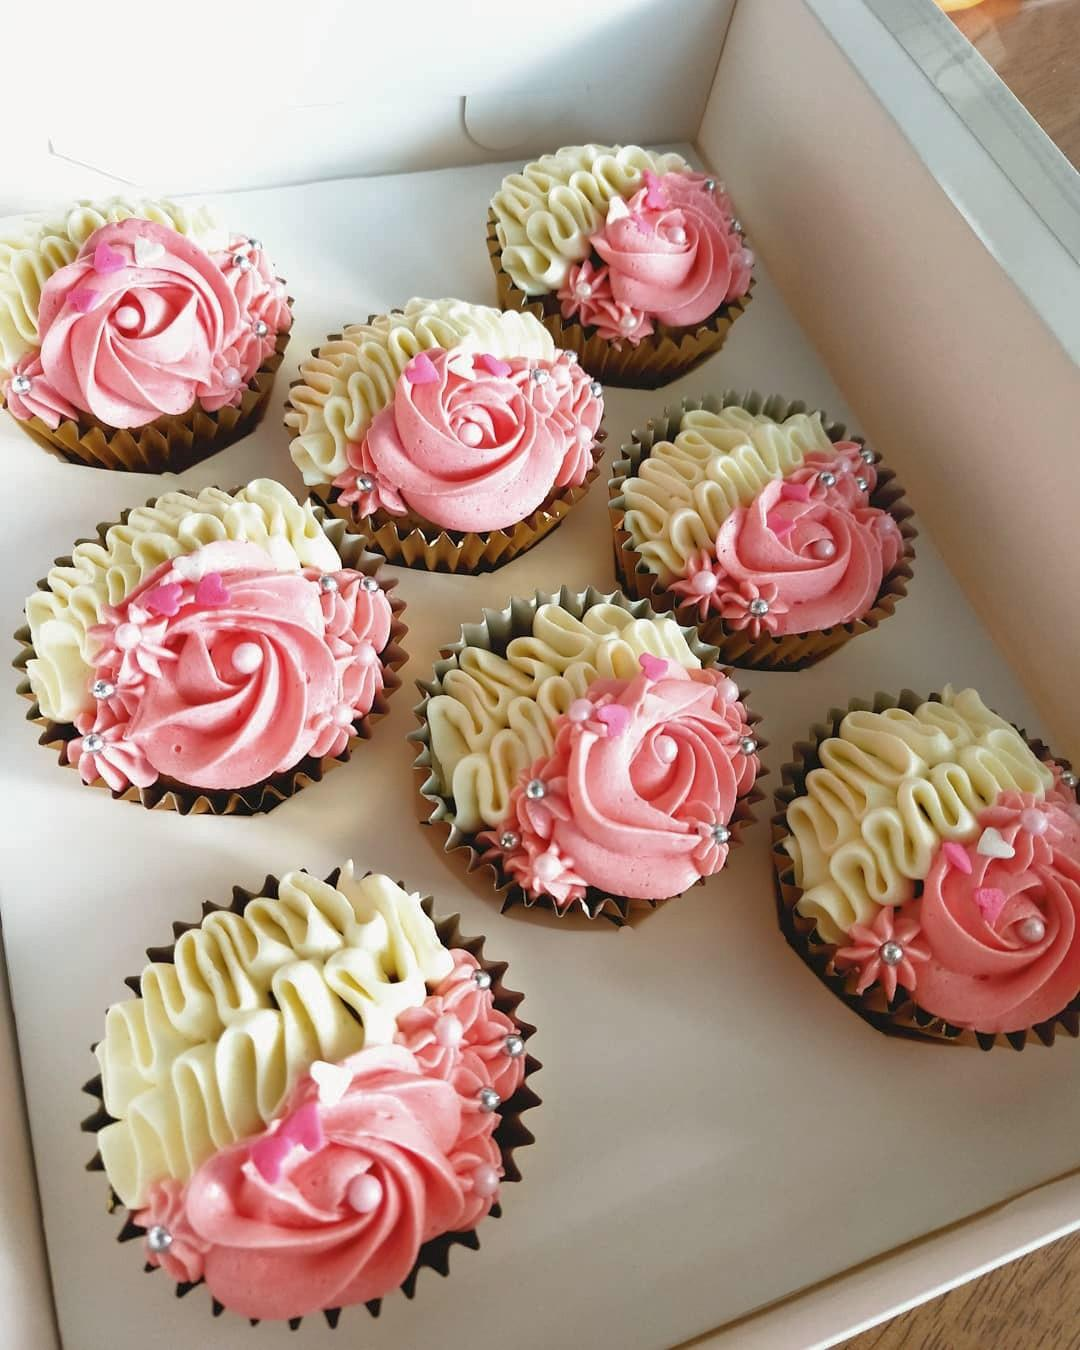 Offer 16 Pretty Cup Cakes Food Drinks Baked Goods On